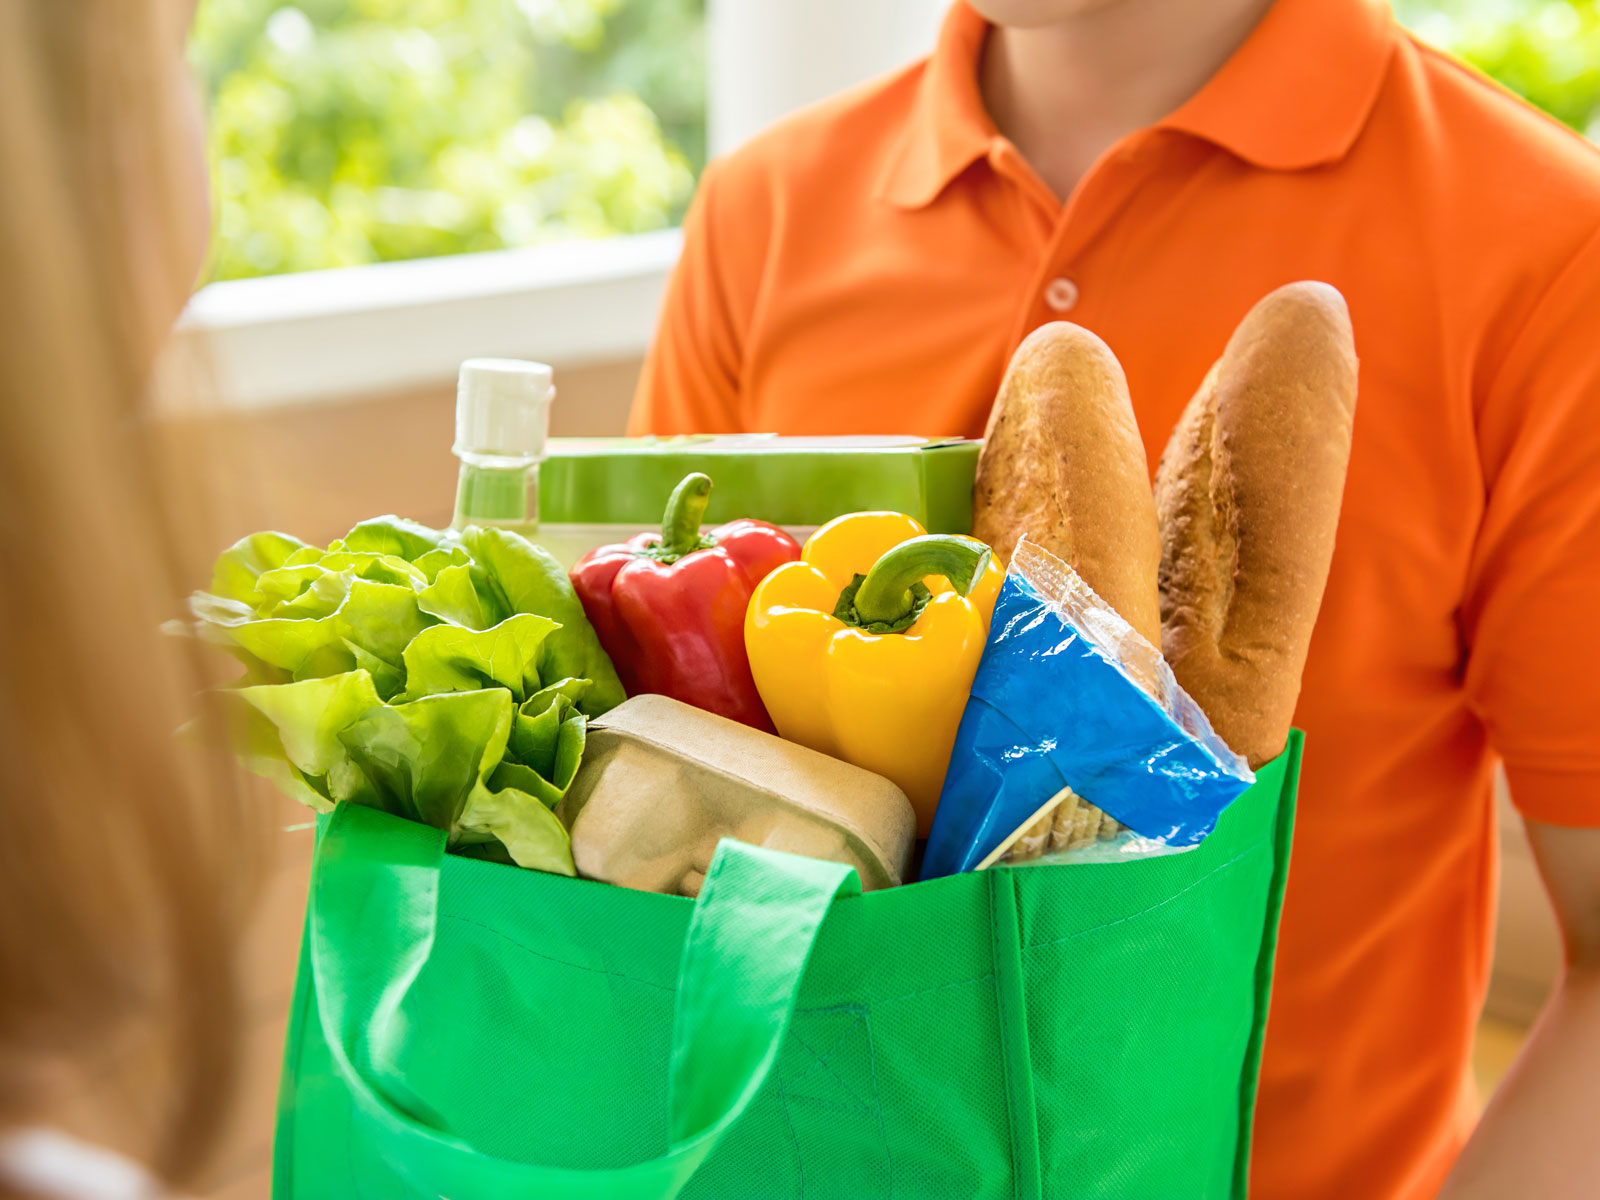 How to Get Free Instacart Grocery Delivery This Month